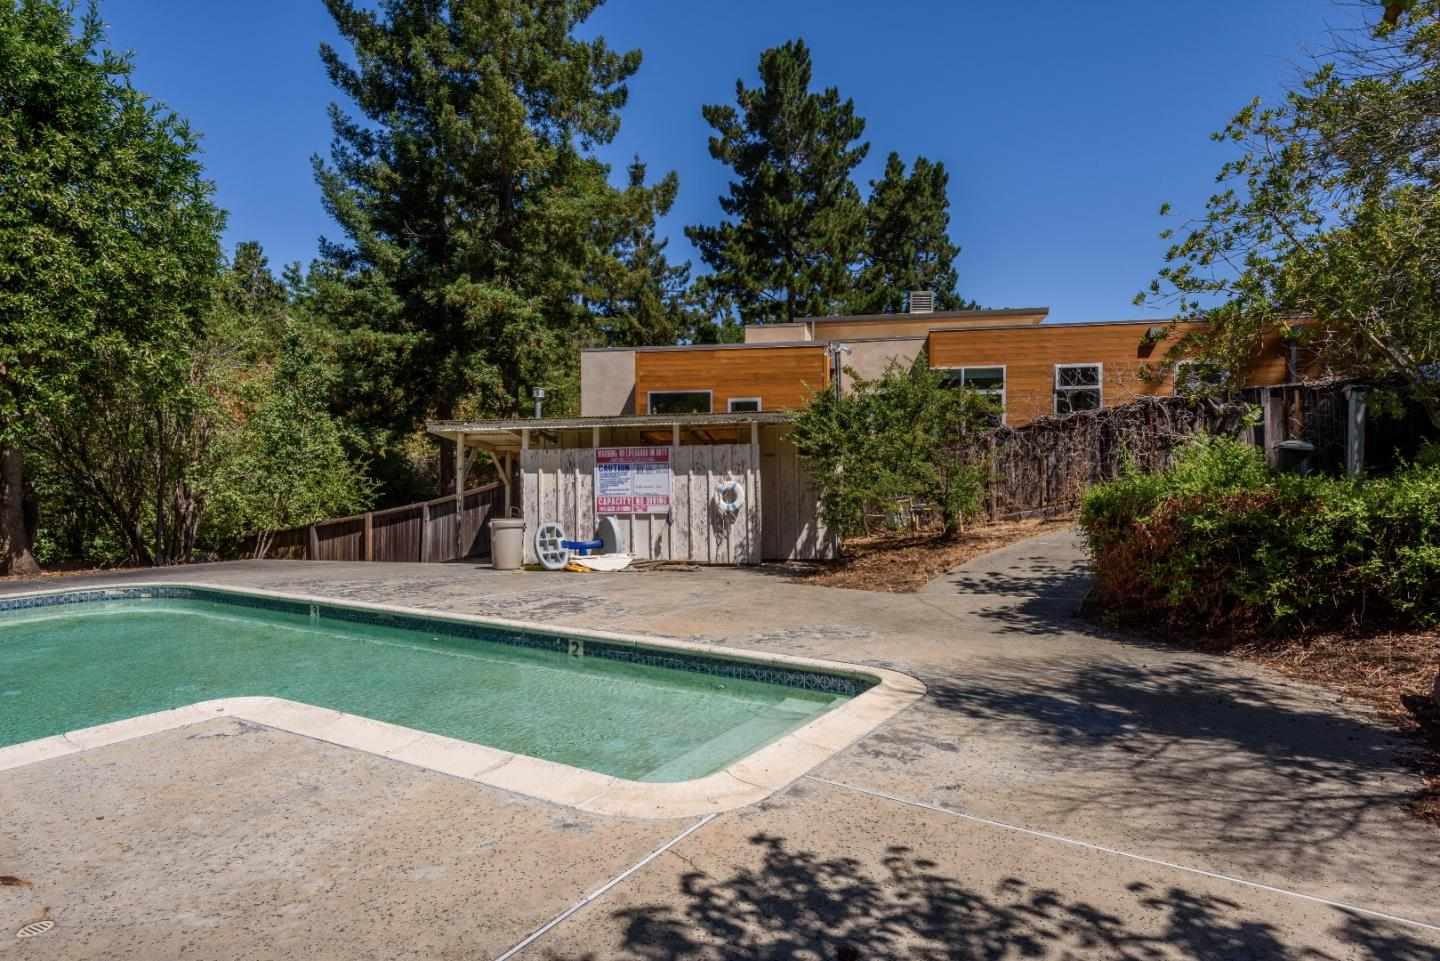 Additional photo for property listing at 13 Cypress Court  Los Altos, Kalifornien 94022 Vereinigte Staaten